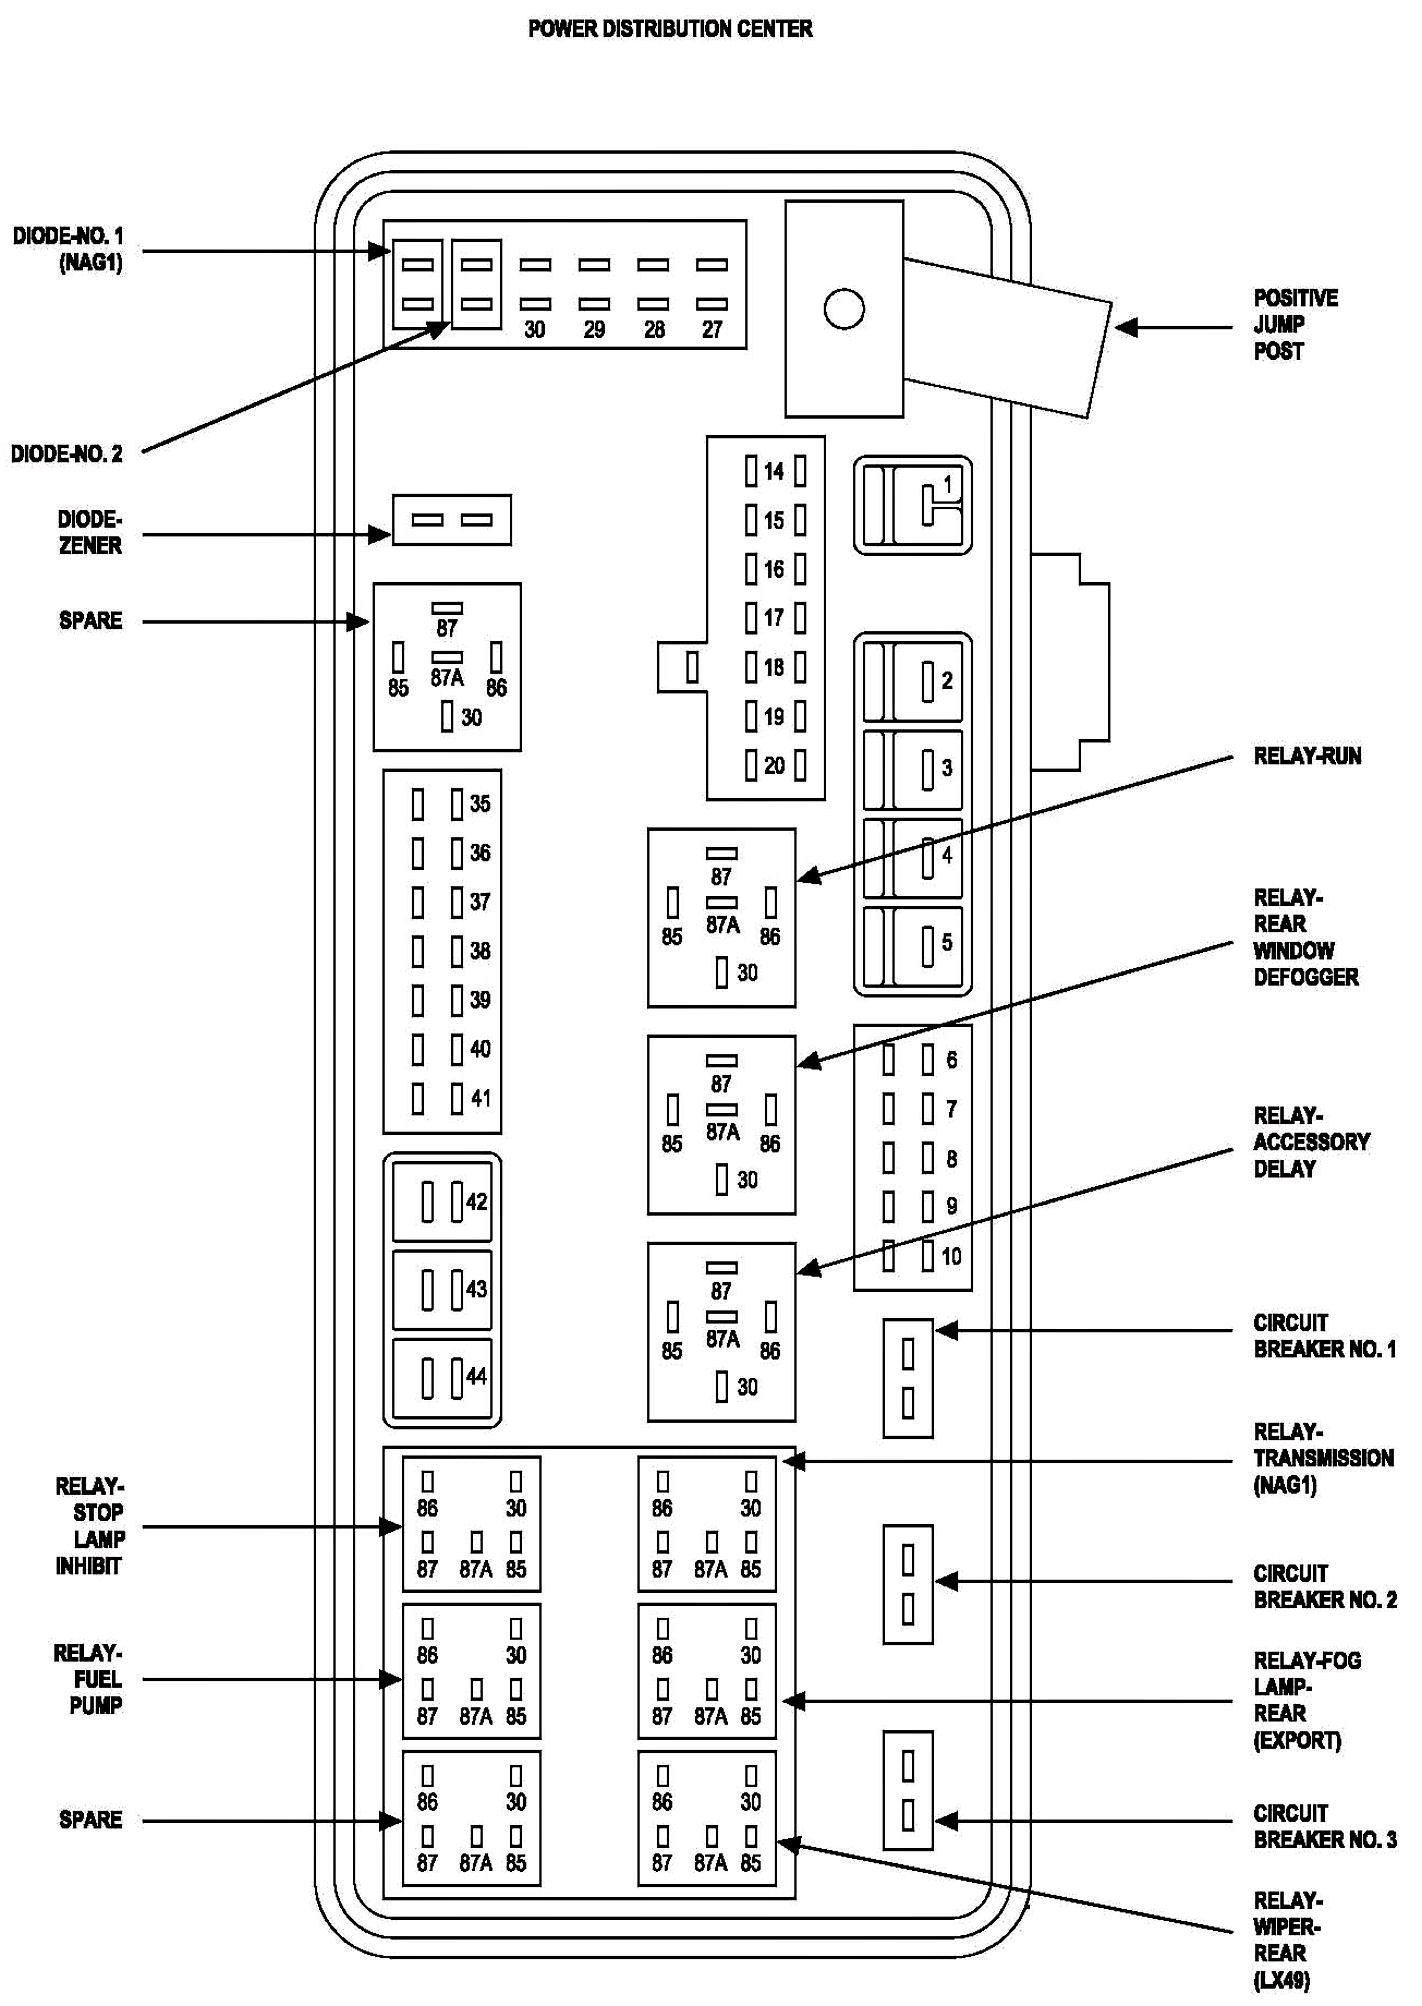 Roger Vivi Ersaks  2008 Chrysler 300 Fuse Panel Diagram